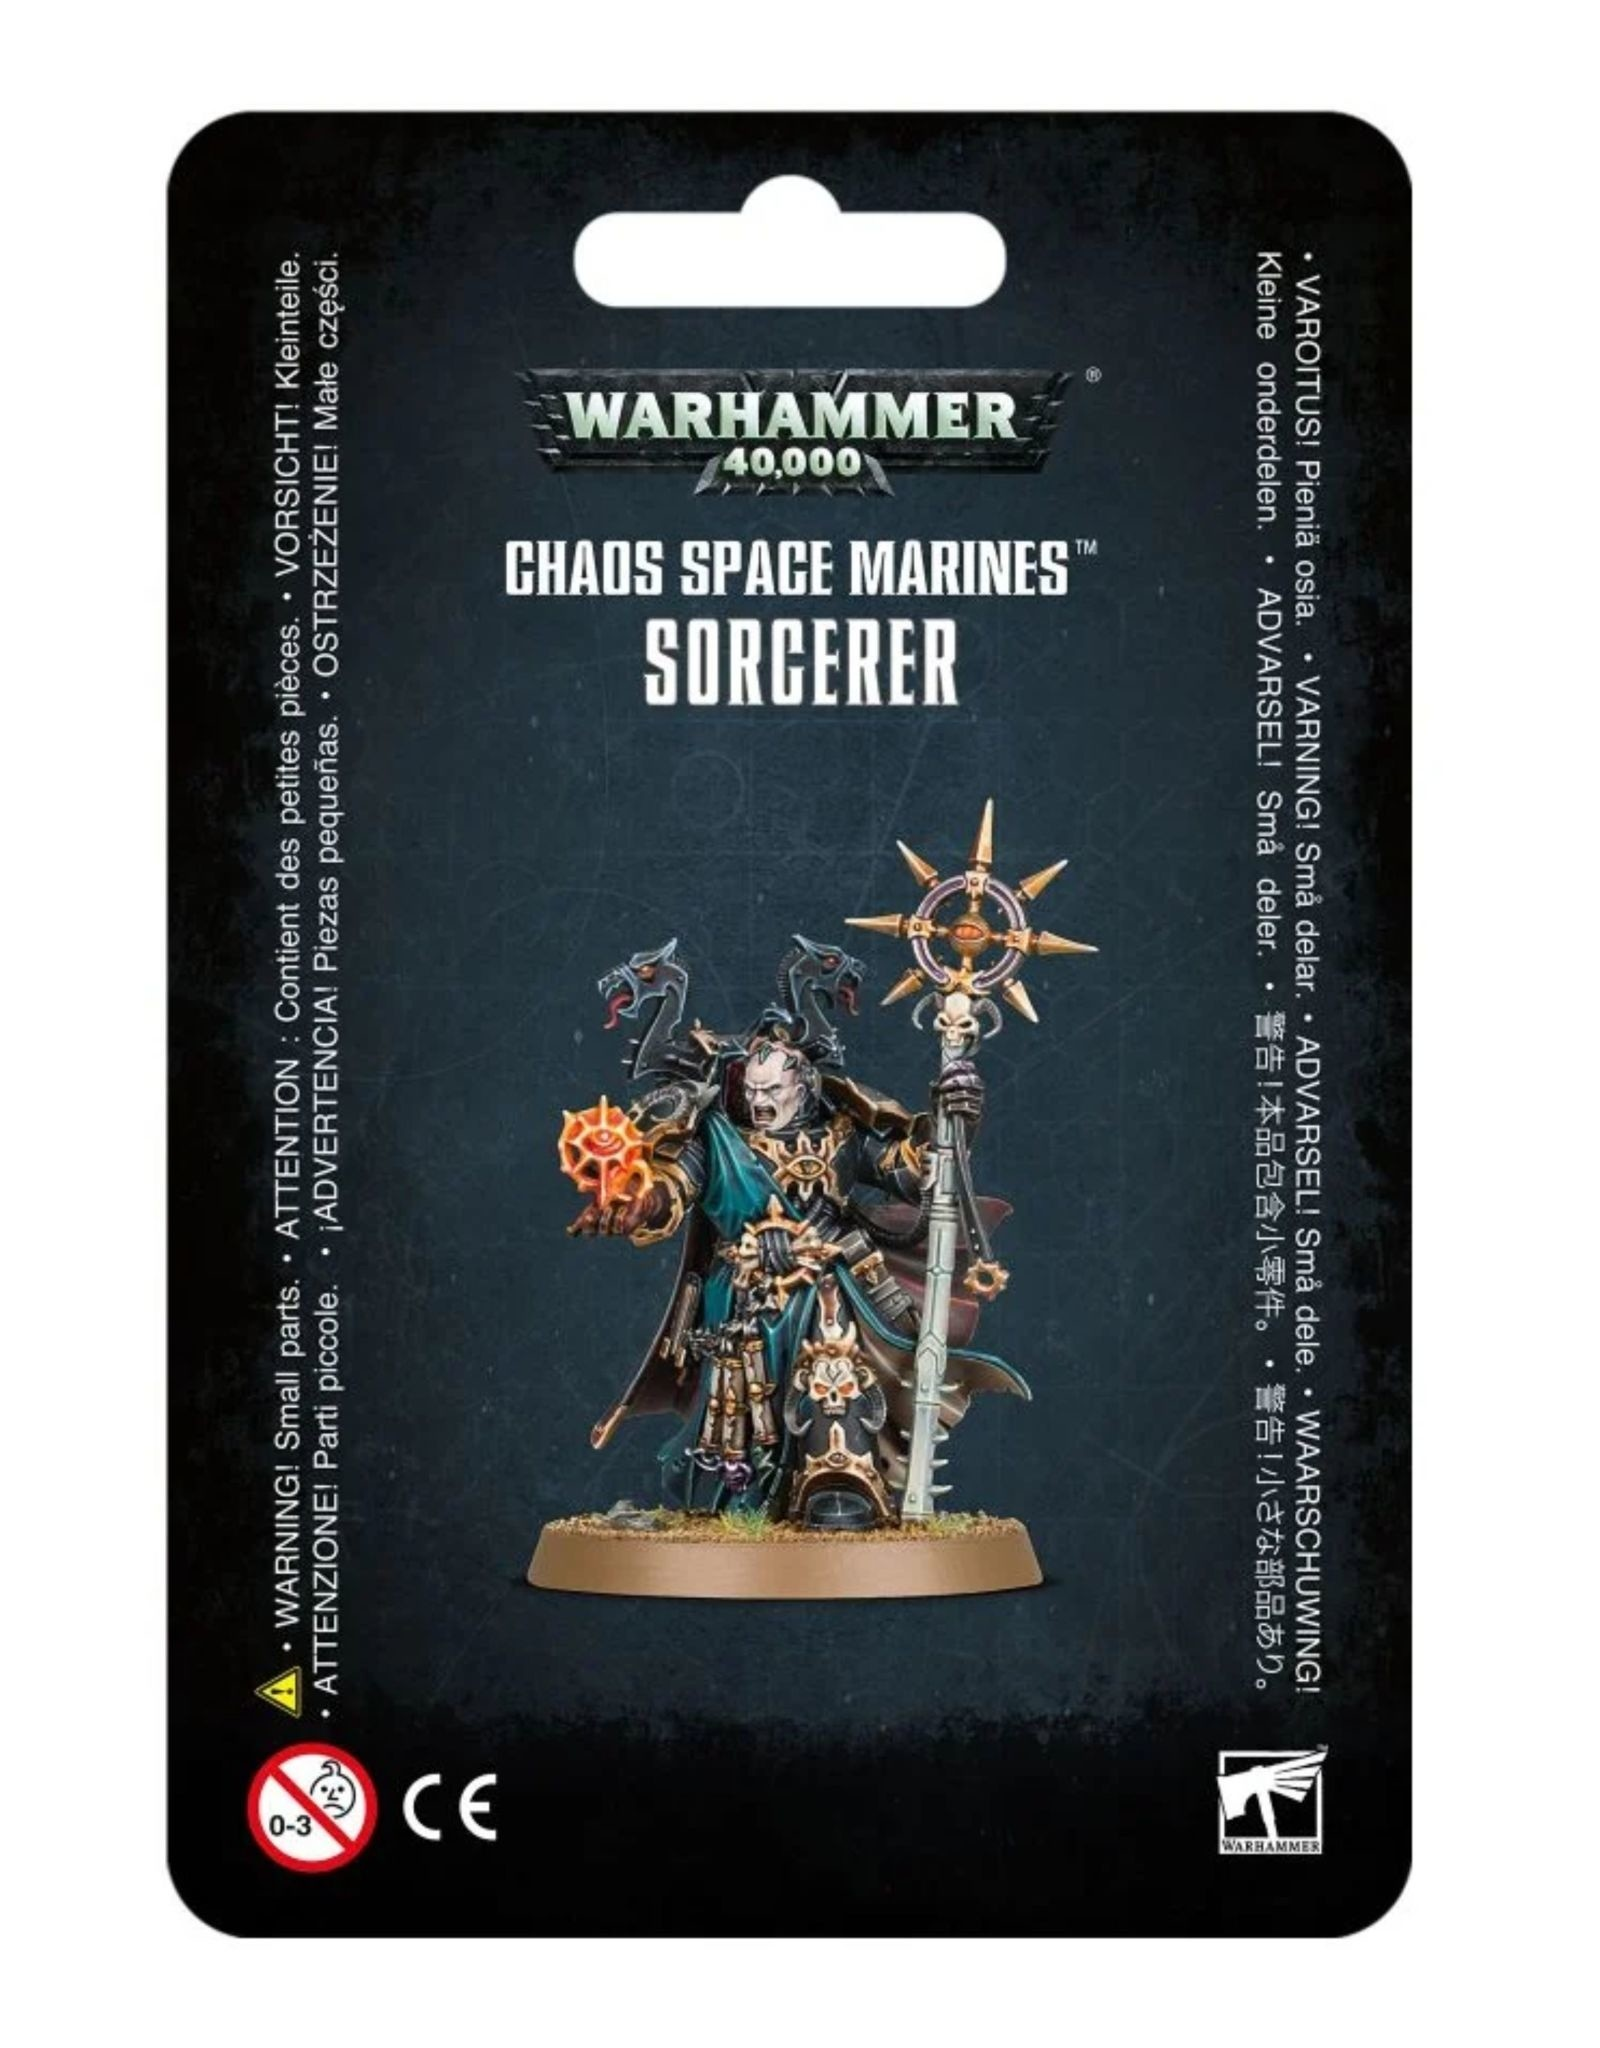 Warhammer 40k Chaos Space Marines Sorcerer